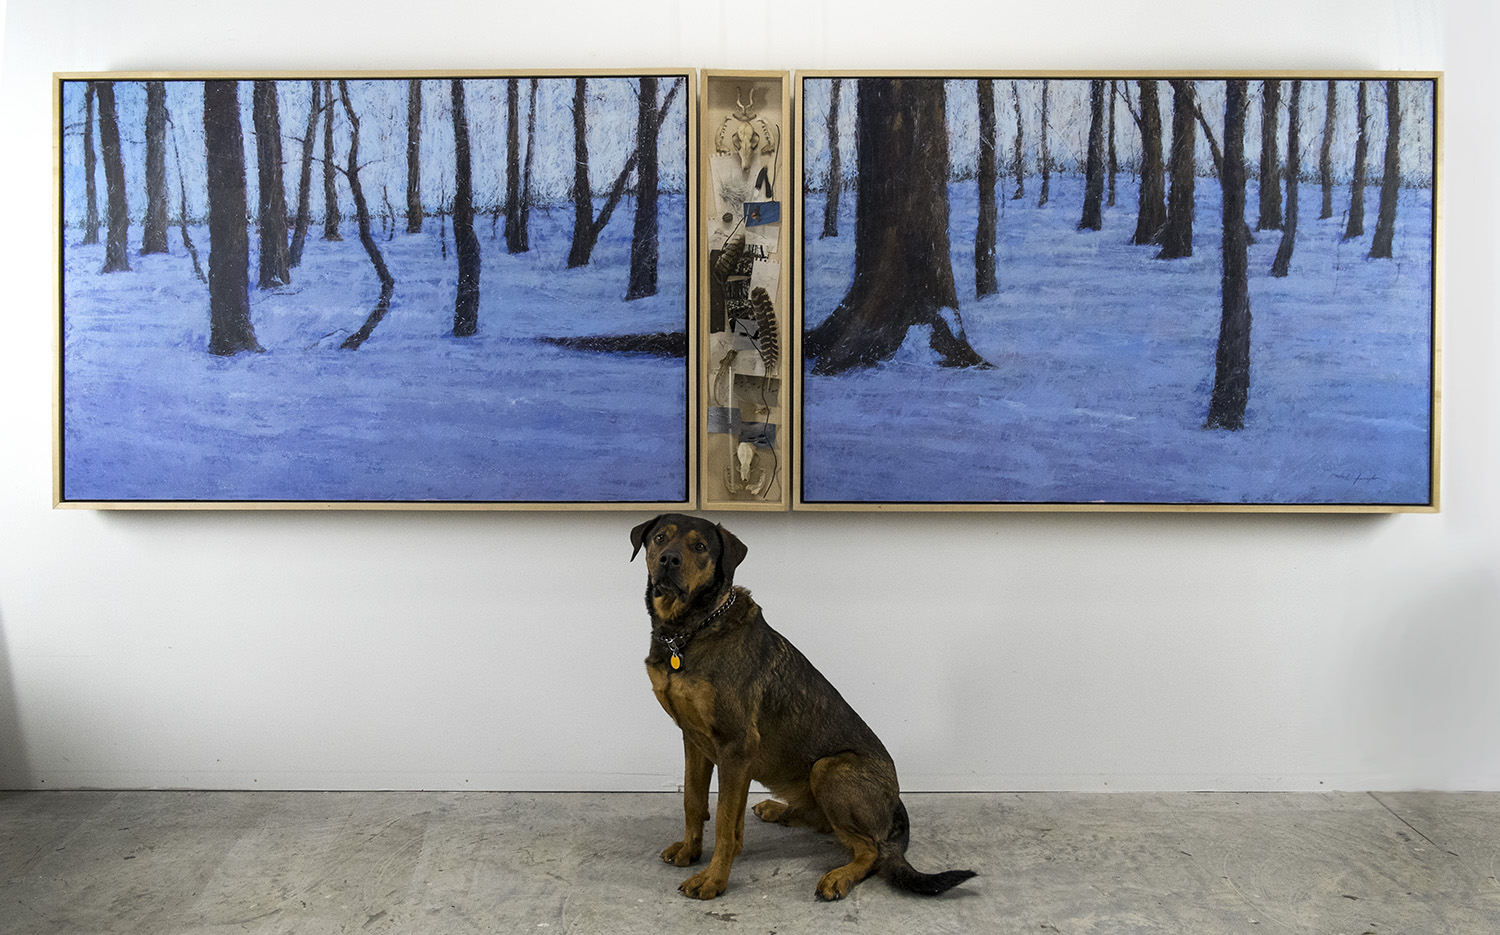 Trespass, 48 x 144 inches, pup not included. Oil on canvas with curio cabinet, and the Big Nugget. Available through the artist.